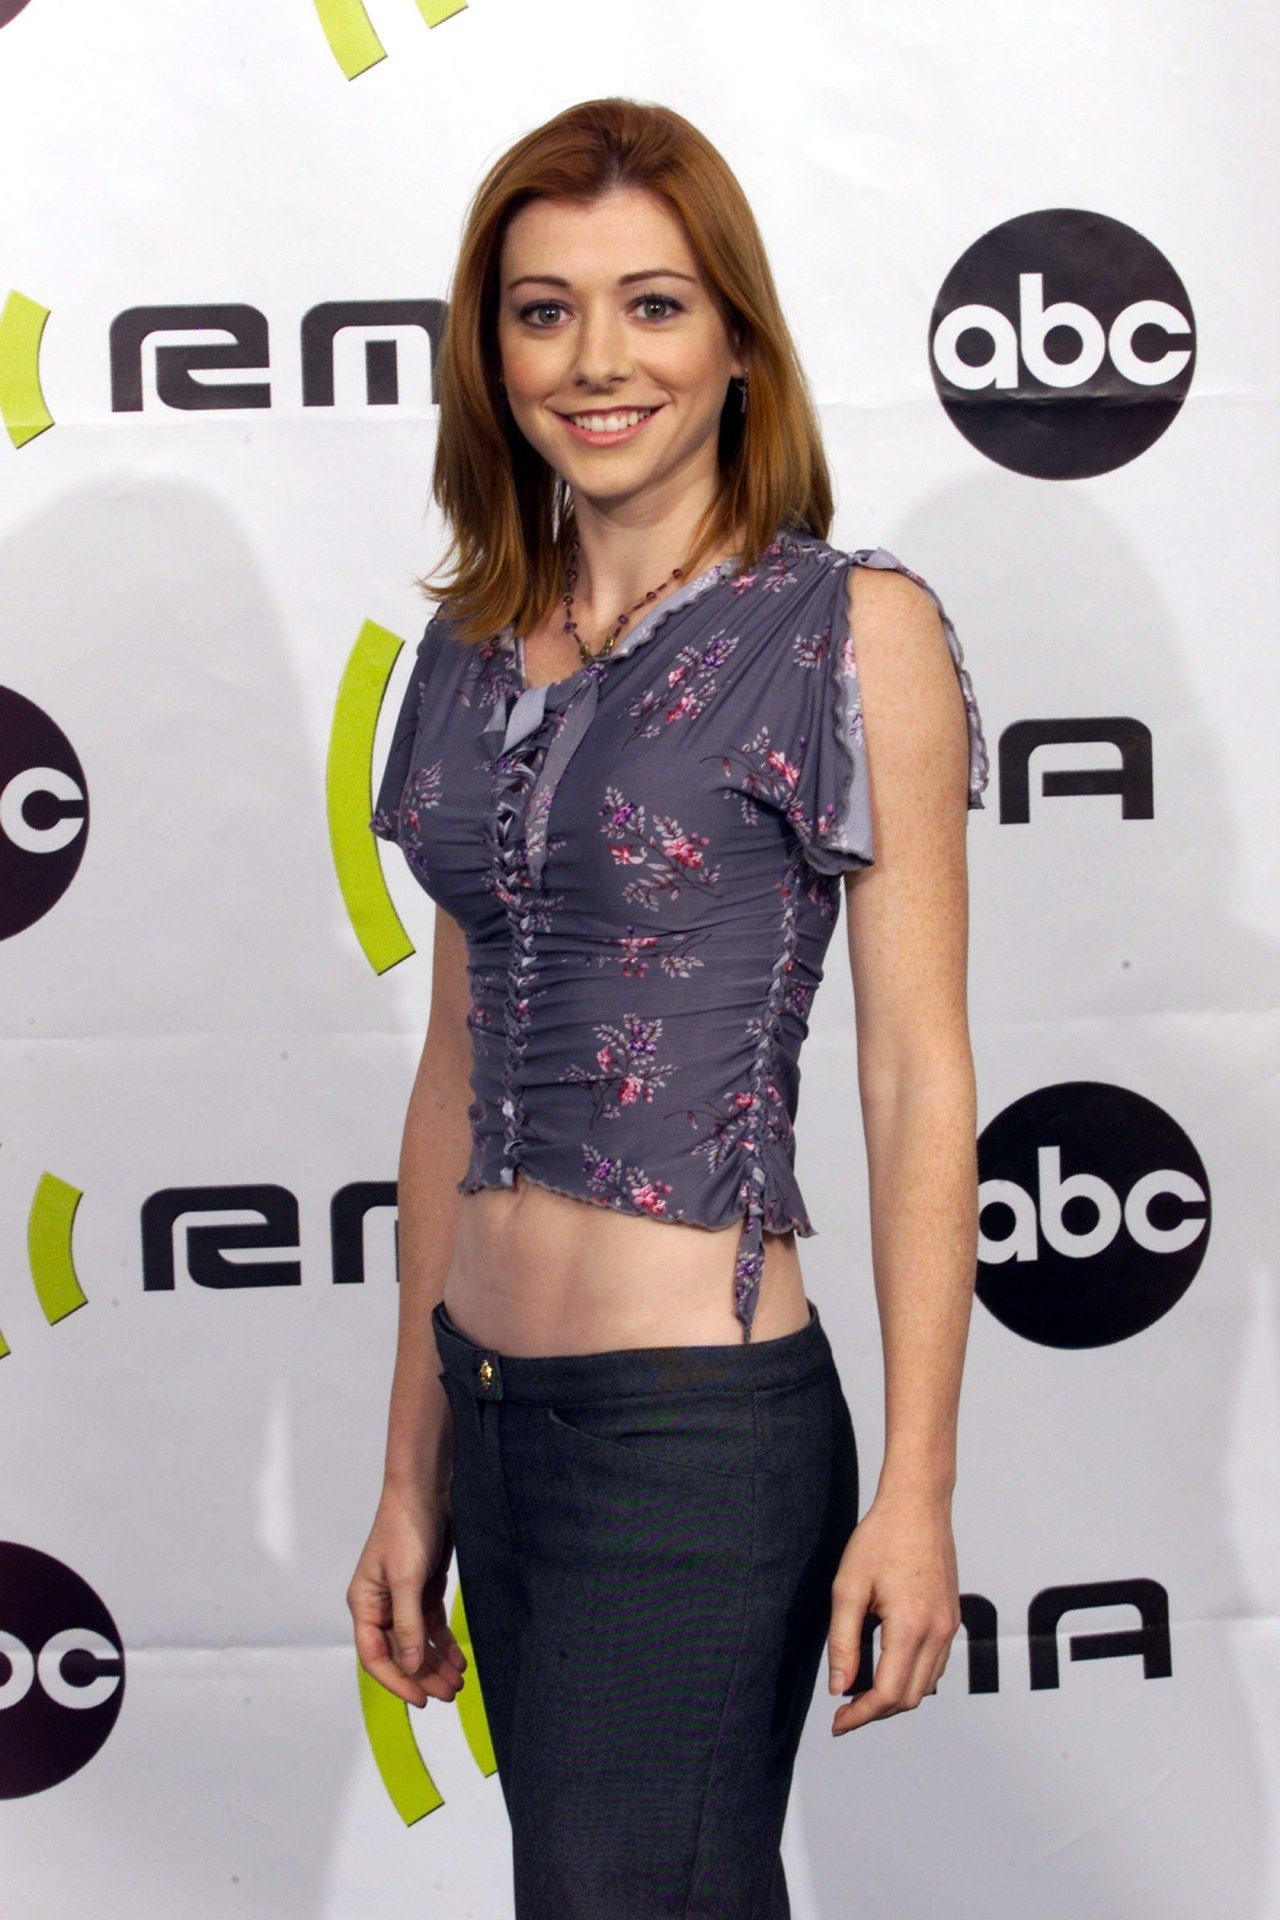 Awesome Girls Desktop Backgrounds: Alyson Hannigan HQ Definition #966411 |.Ssoflx